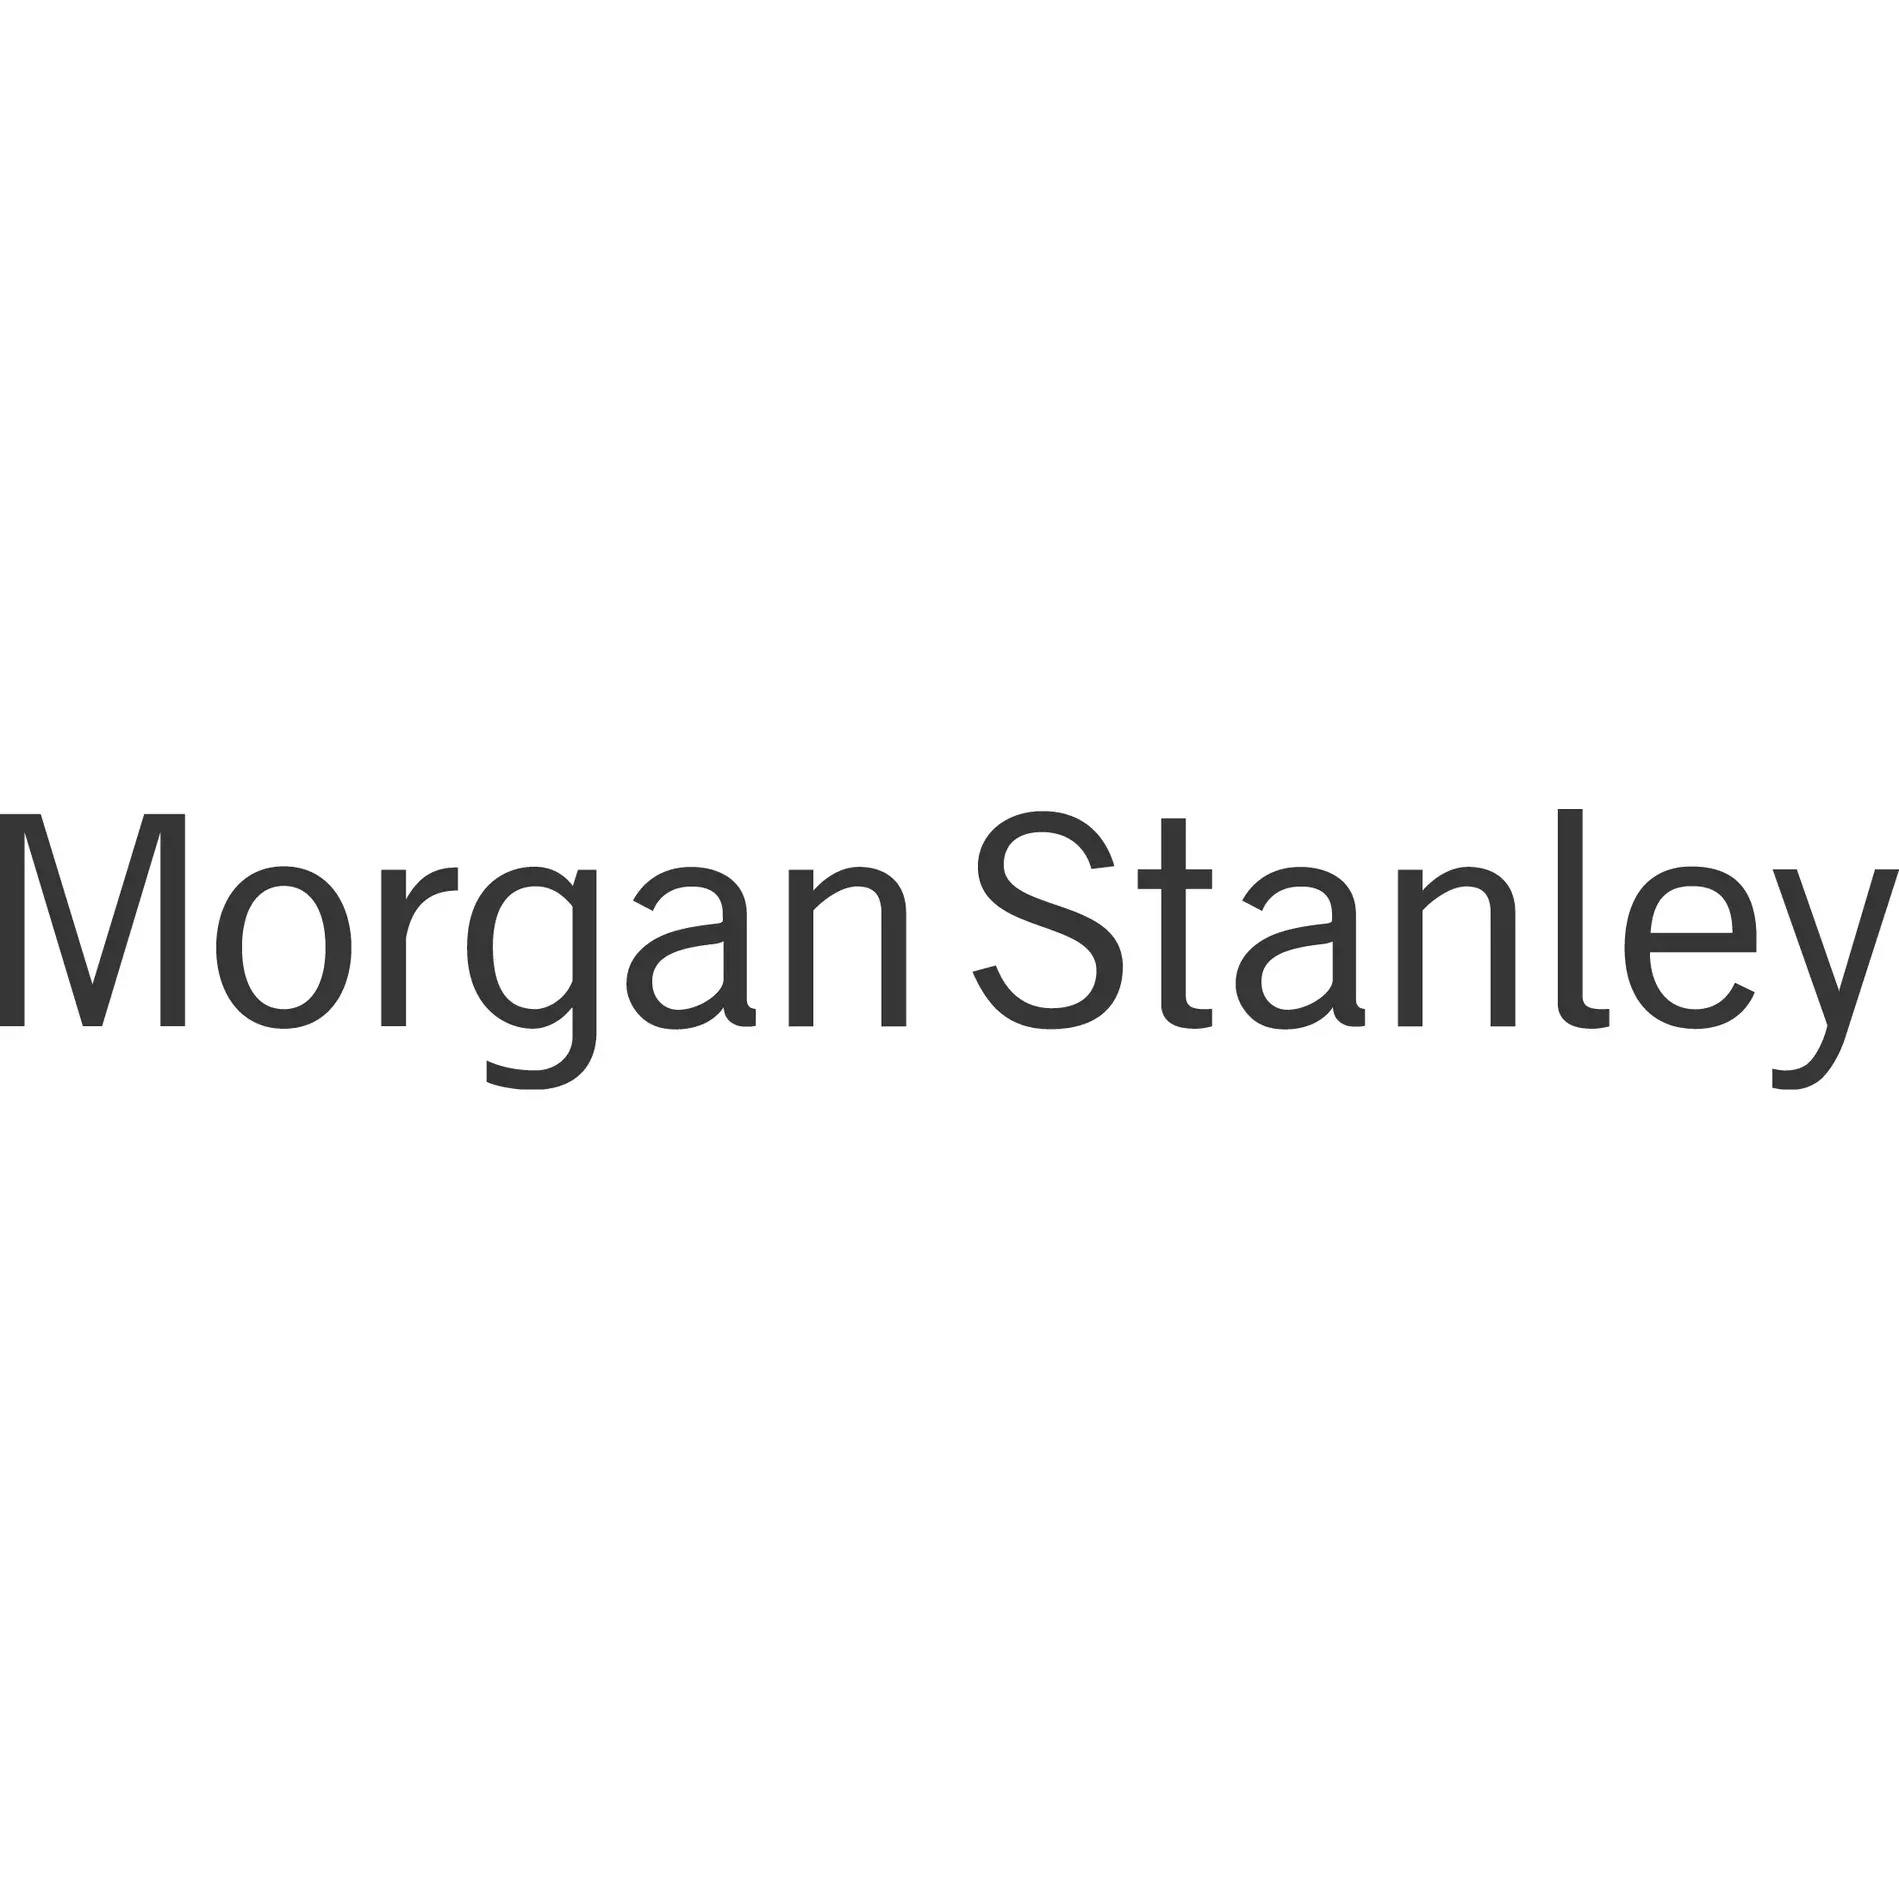 The 227 Wealth Management Group - Morgan Stanley | Financial Advisor in Chicago,Illinois